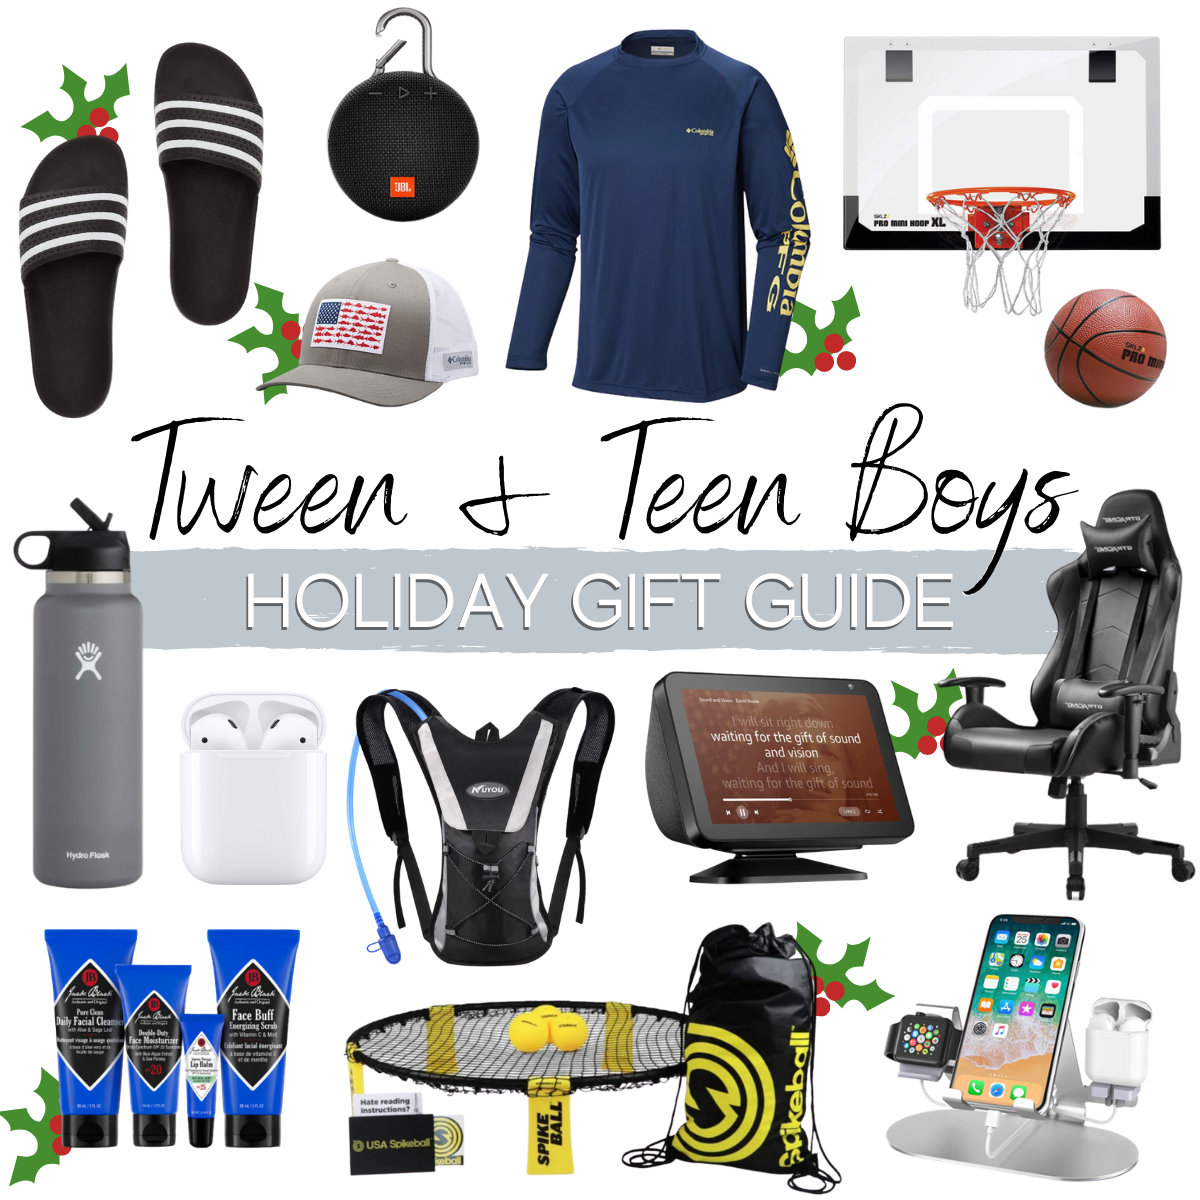 teen boys gift guide |Christmas Gift Ideas by popular Houston life and style blog, Haute and Humid: collage image of gift ideas for tween and teen boys.